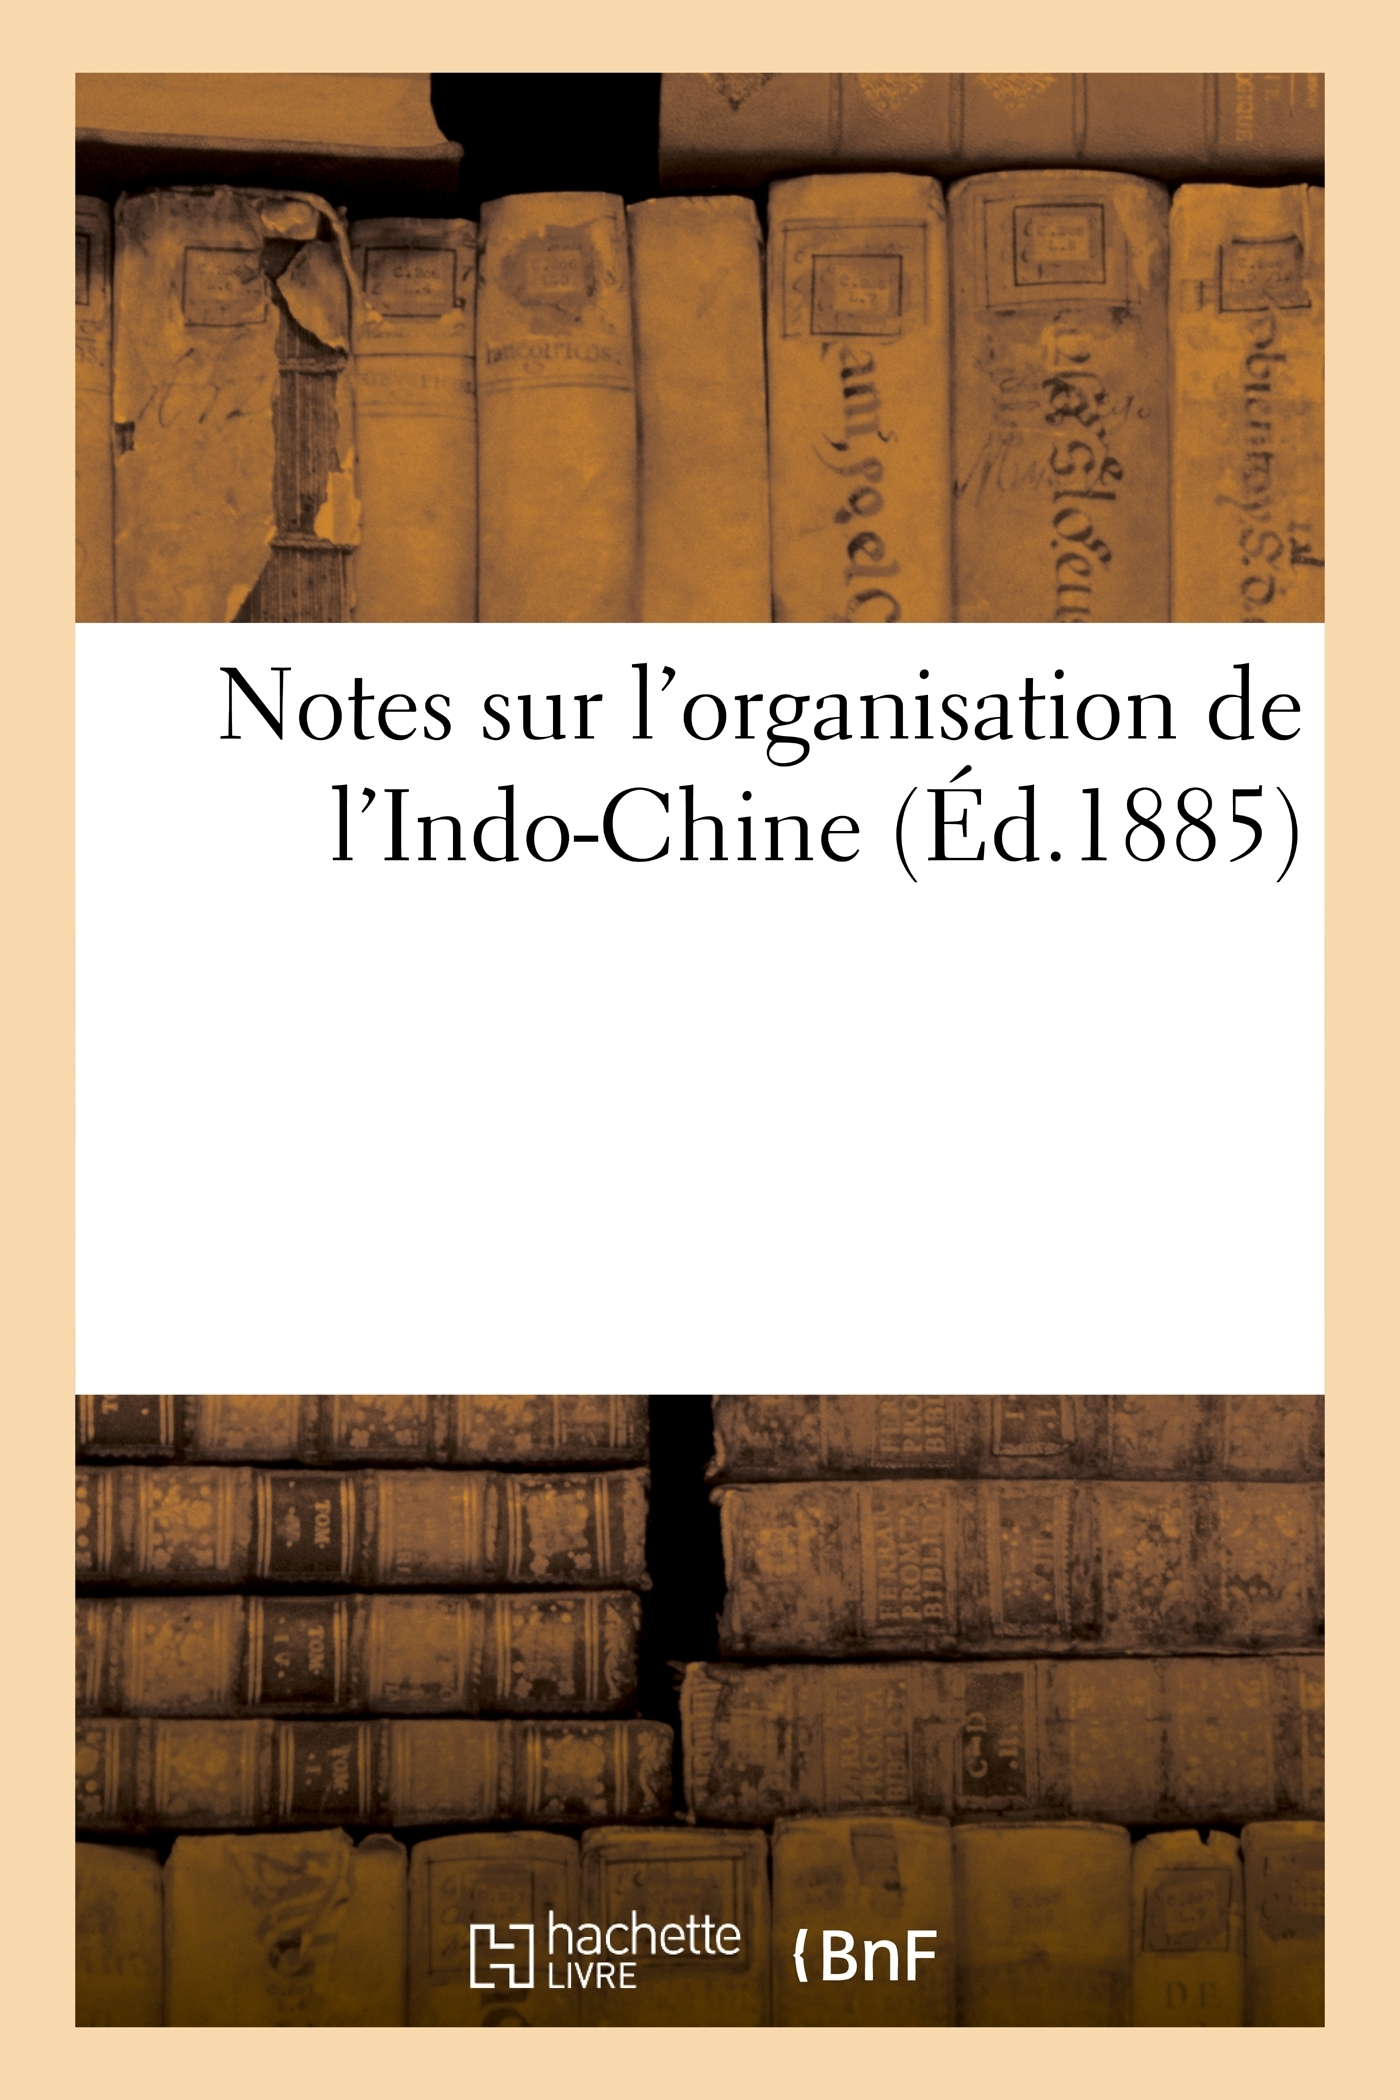 NOTES SUR L'ORGANISATION DE L'INDO-CHINE